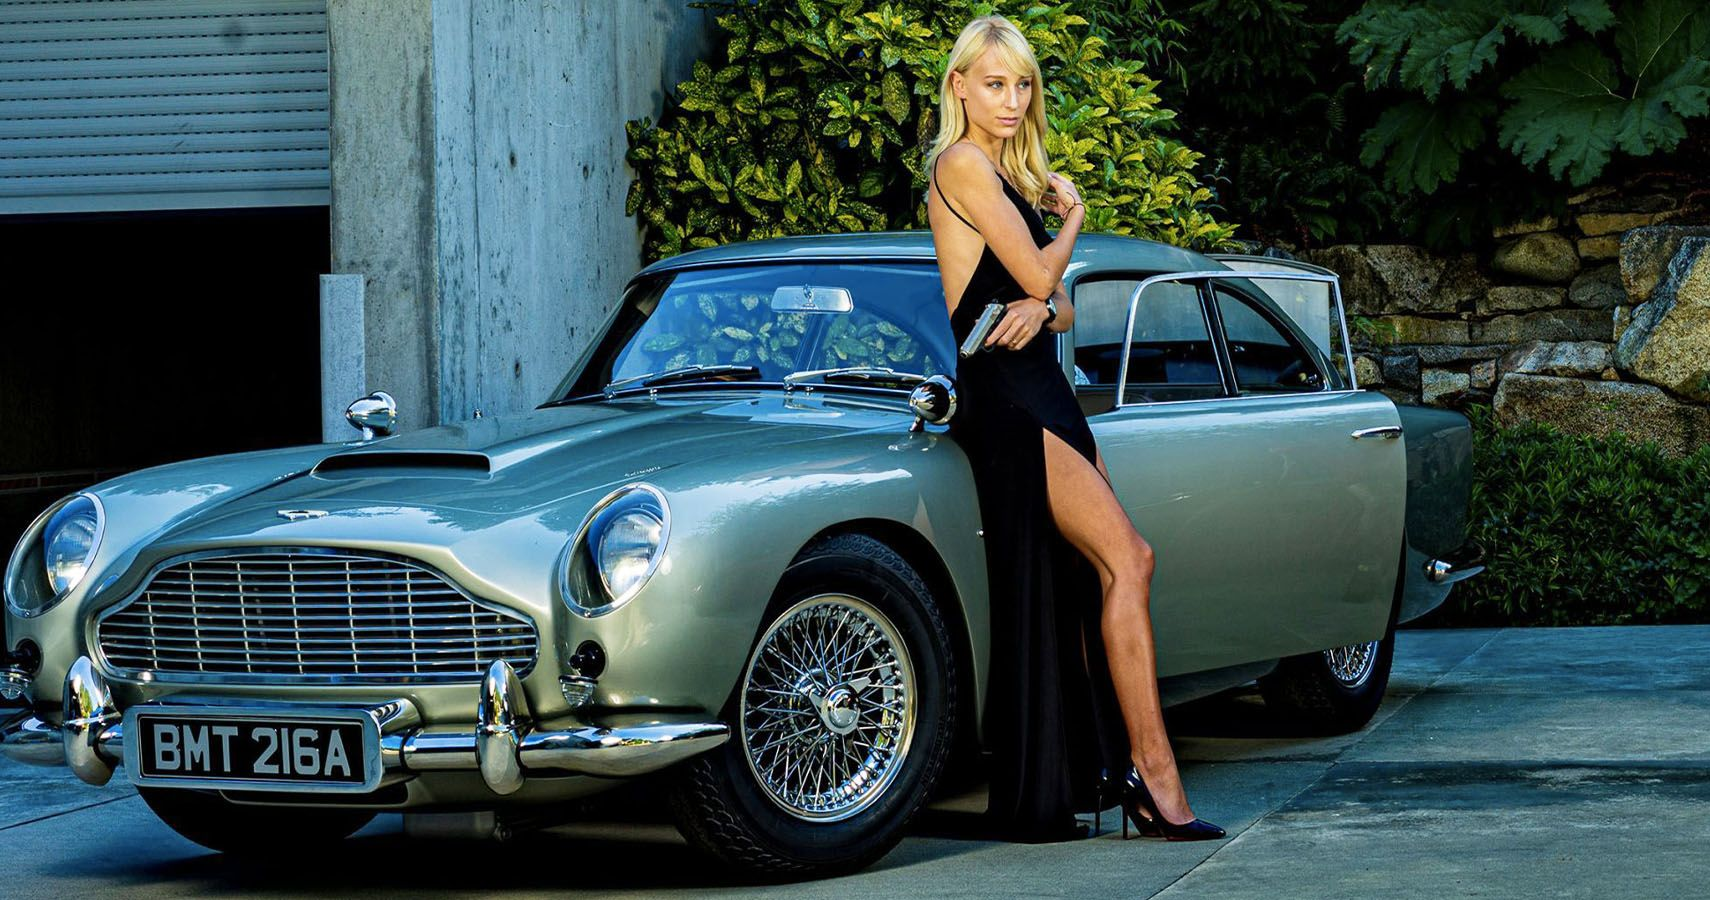 Life-Sized James Bond Aston Martin DB5 Model For Sale With All The Gadgets